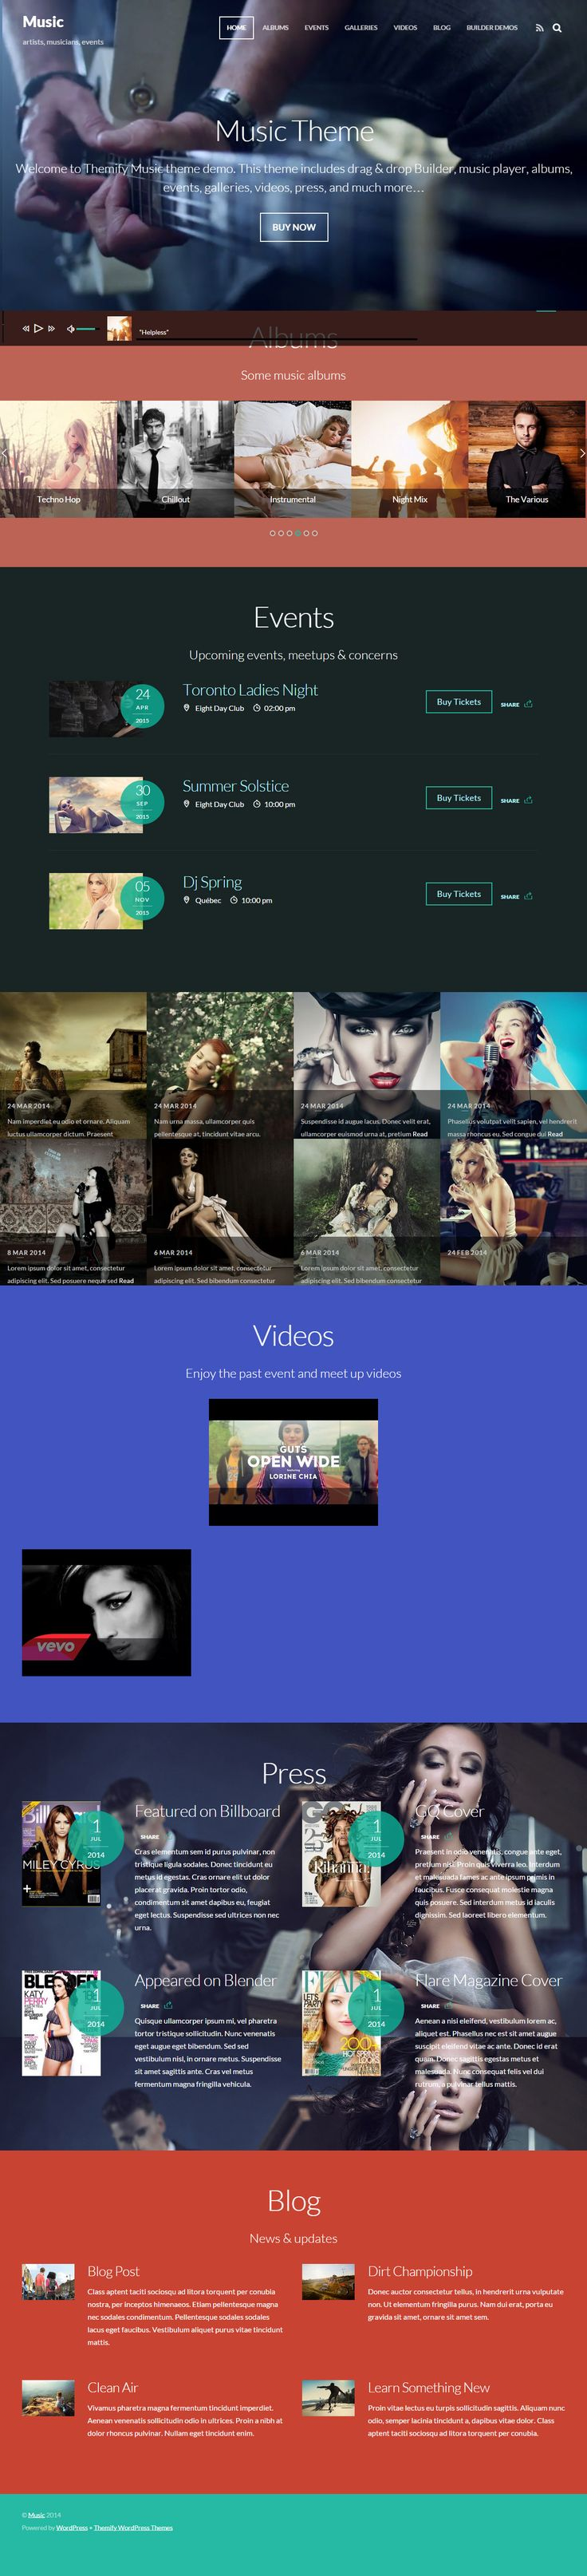 Music is Premium Responsive Retina Parallax WordPress Theme for artists, events, portfolios, photographers, and apps. Video Background. http://www.responsivemiracle.com/cms/wordpress/music-premium-responsive-wordpress-music-theme/